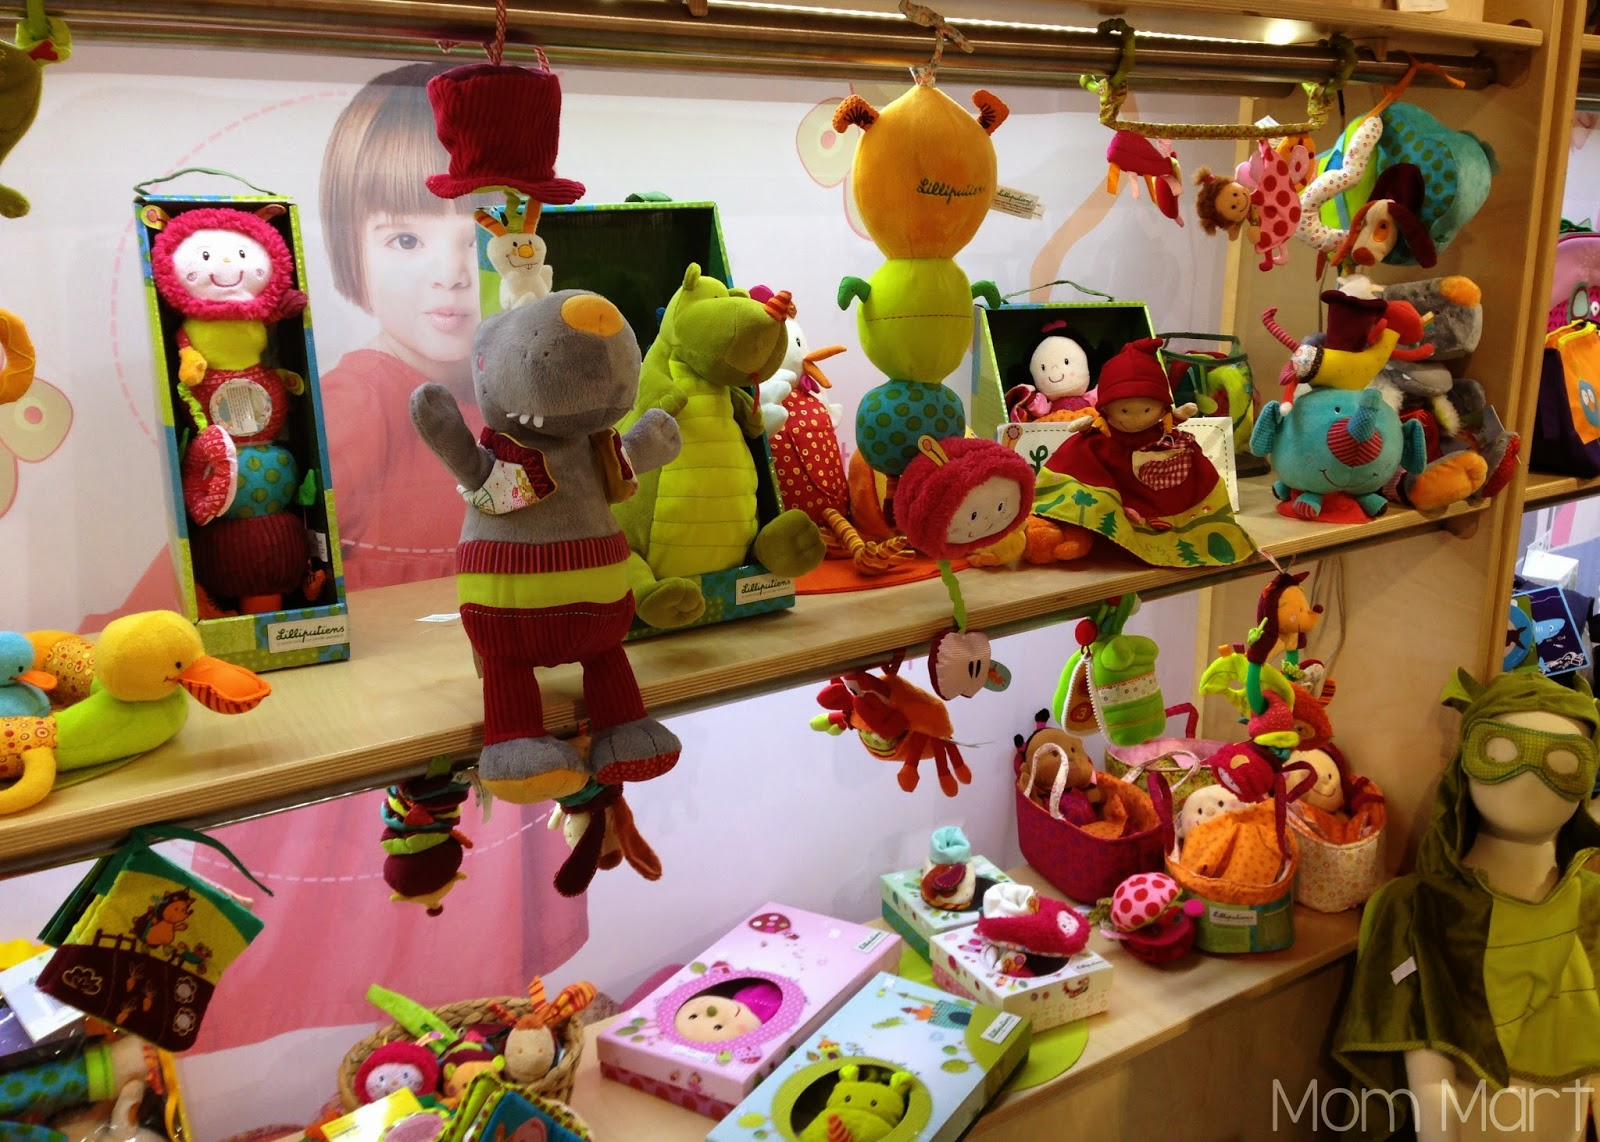 ABC Kids Expo 2014 The Toys of #ABCKids14 HABA lilleputiens